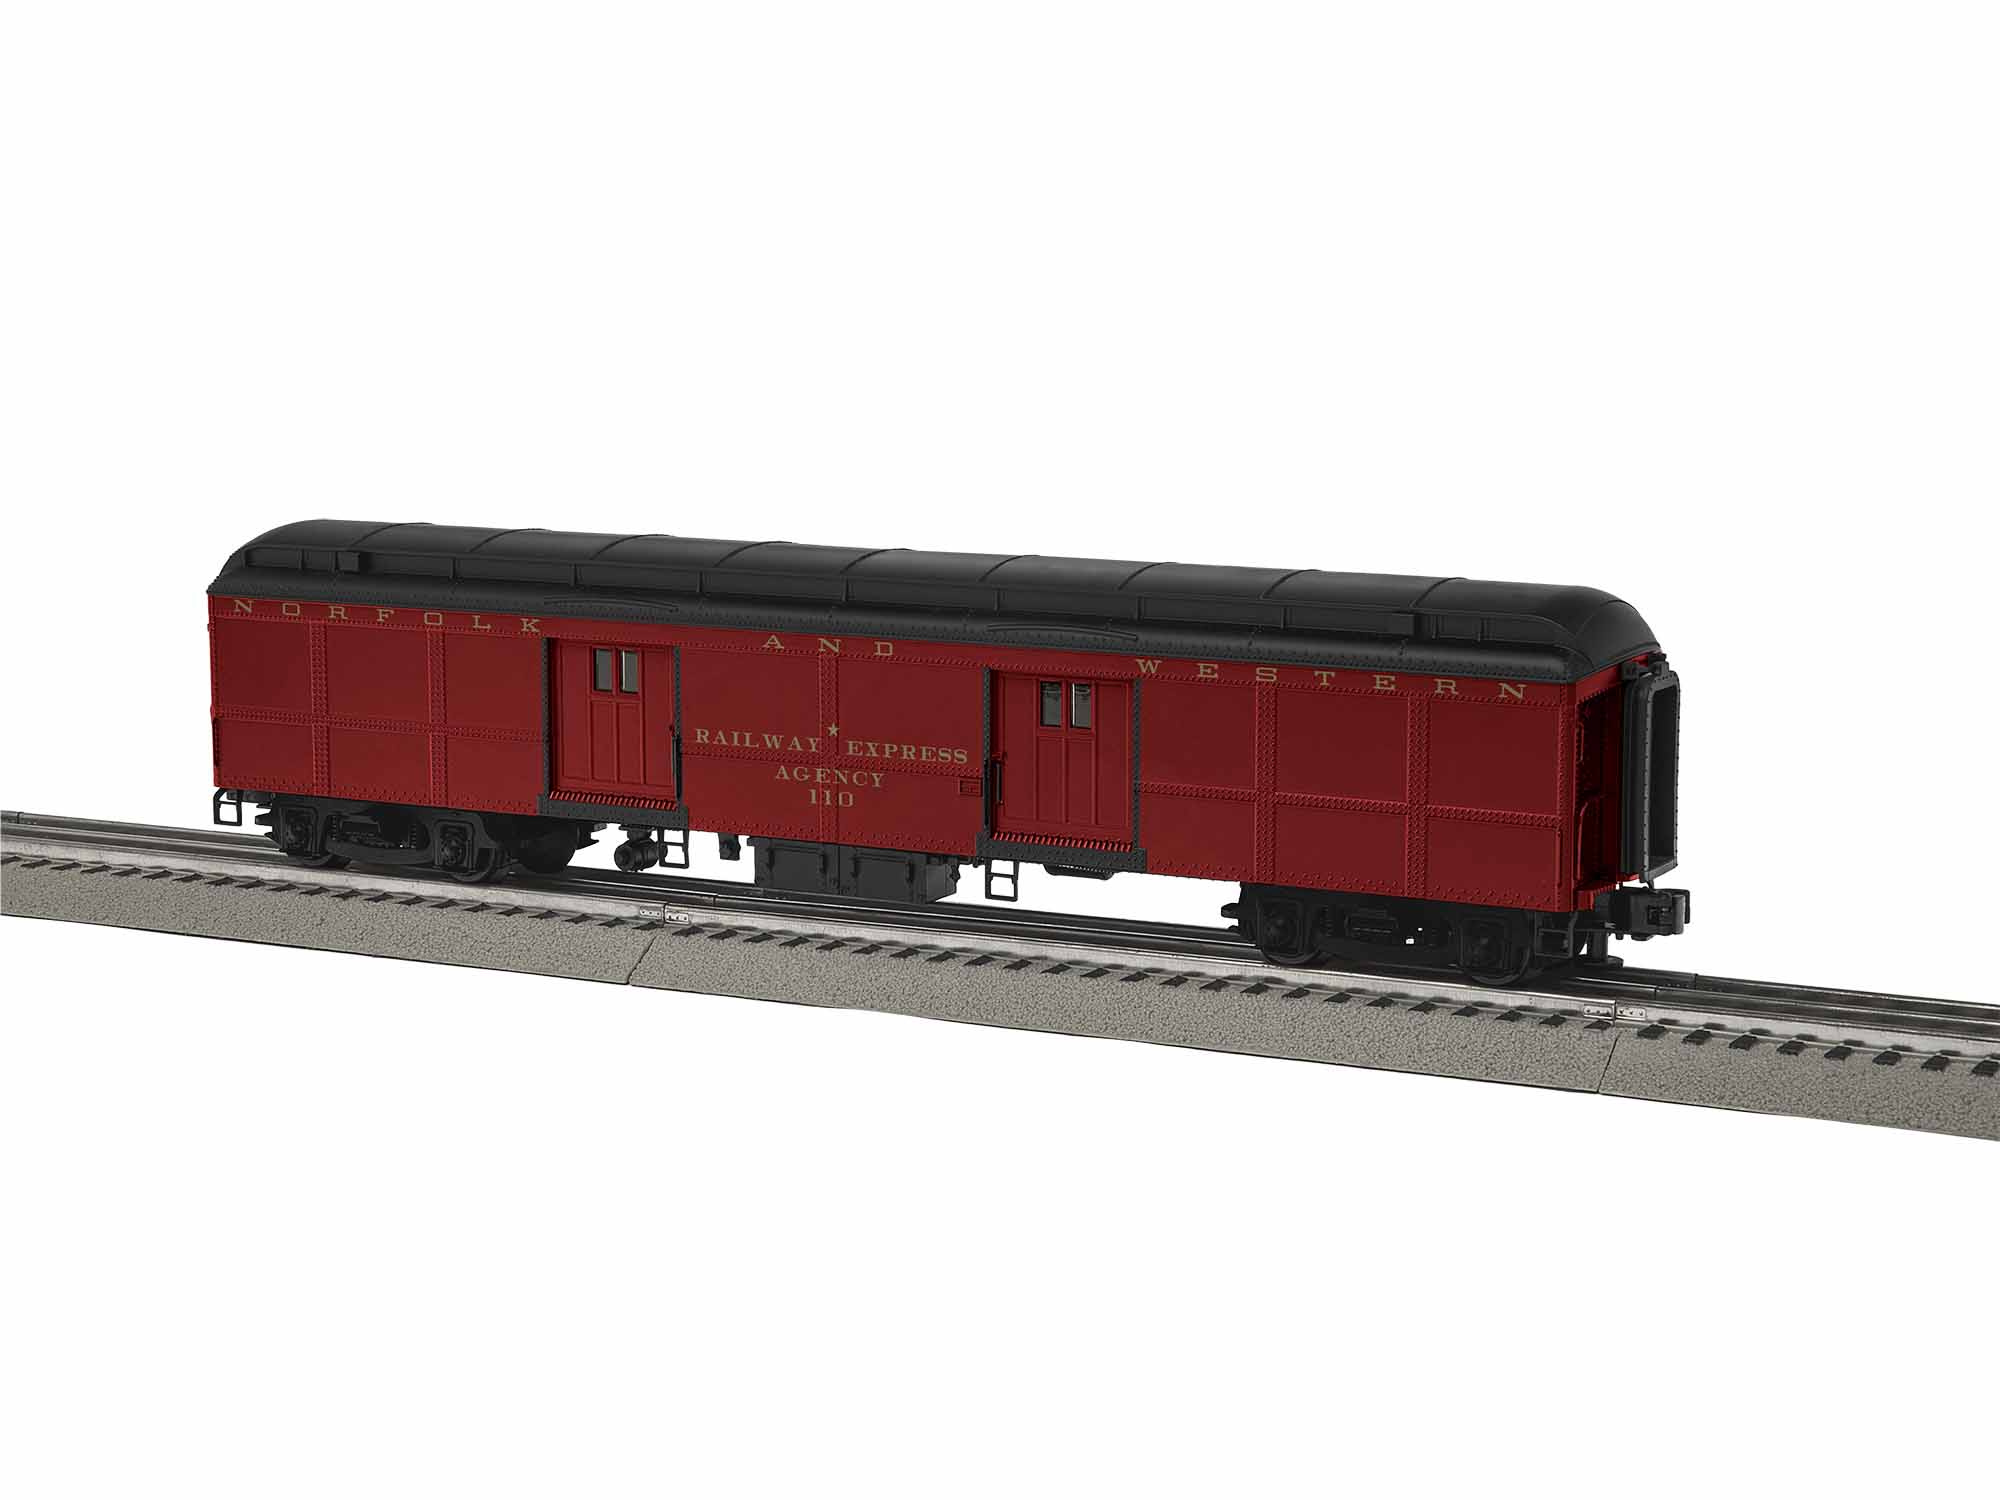 Lionel 1927242 O Heavyweight Baggage Car 3-Rail Norfolk & Western 110 Cavalier Scheme 434-1927242